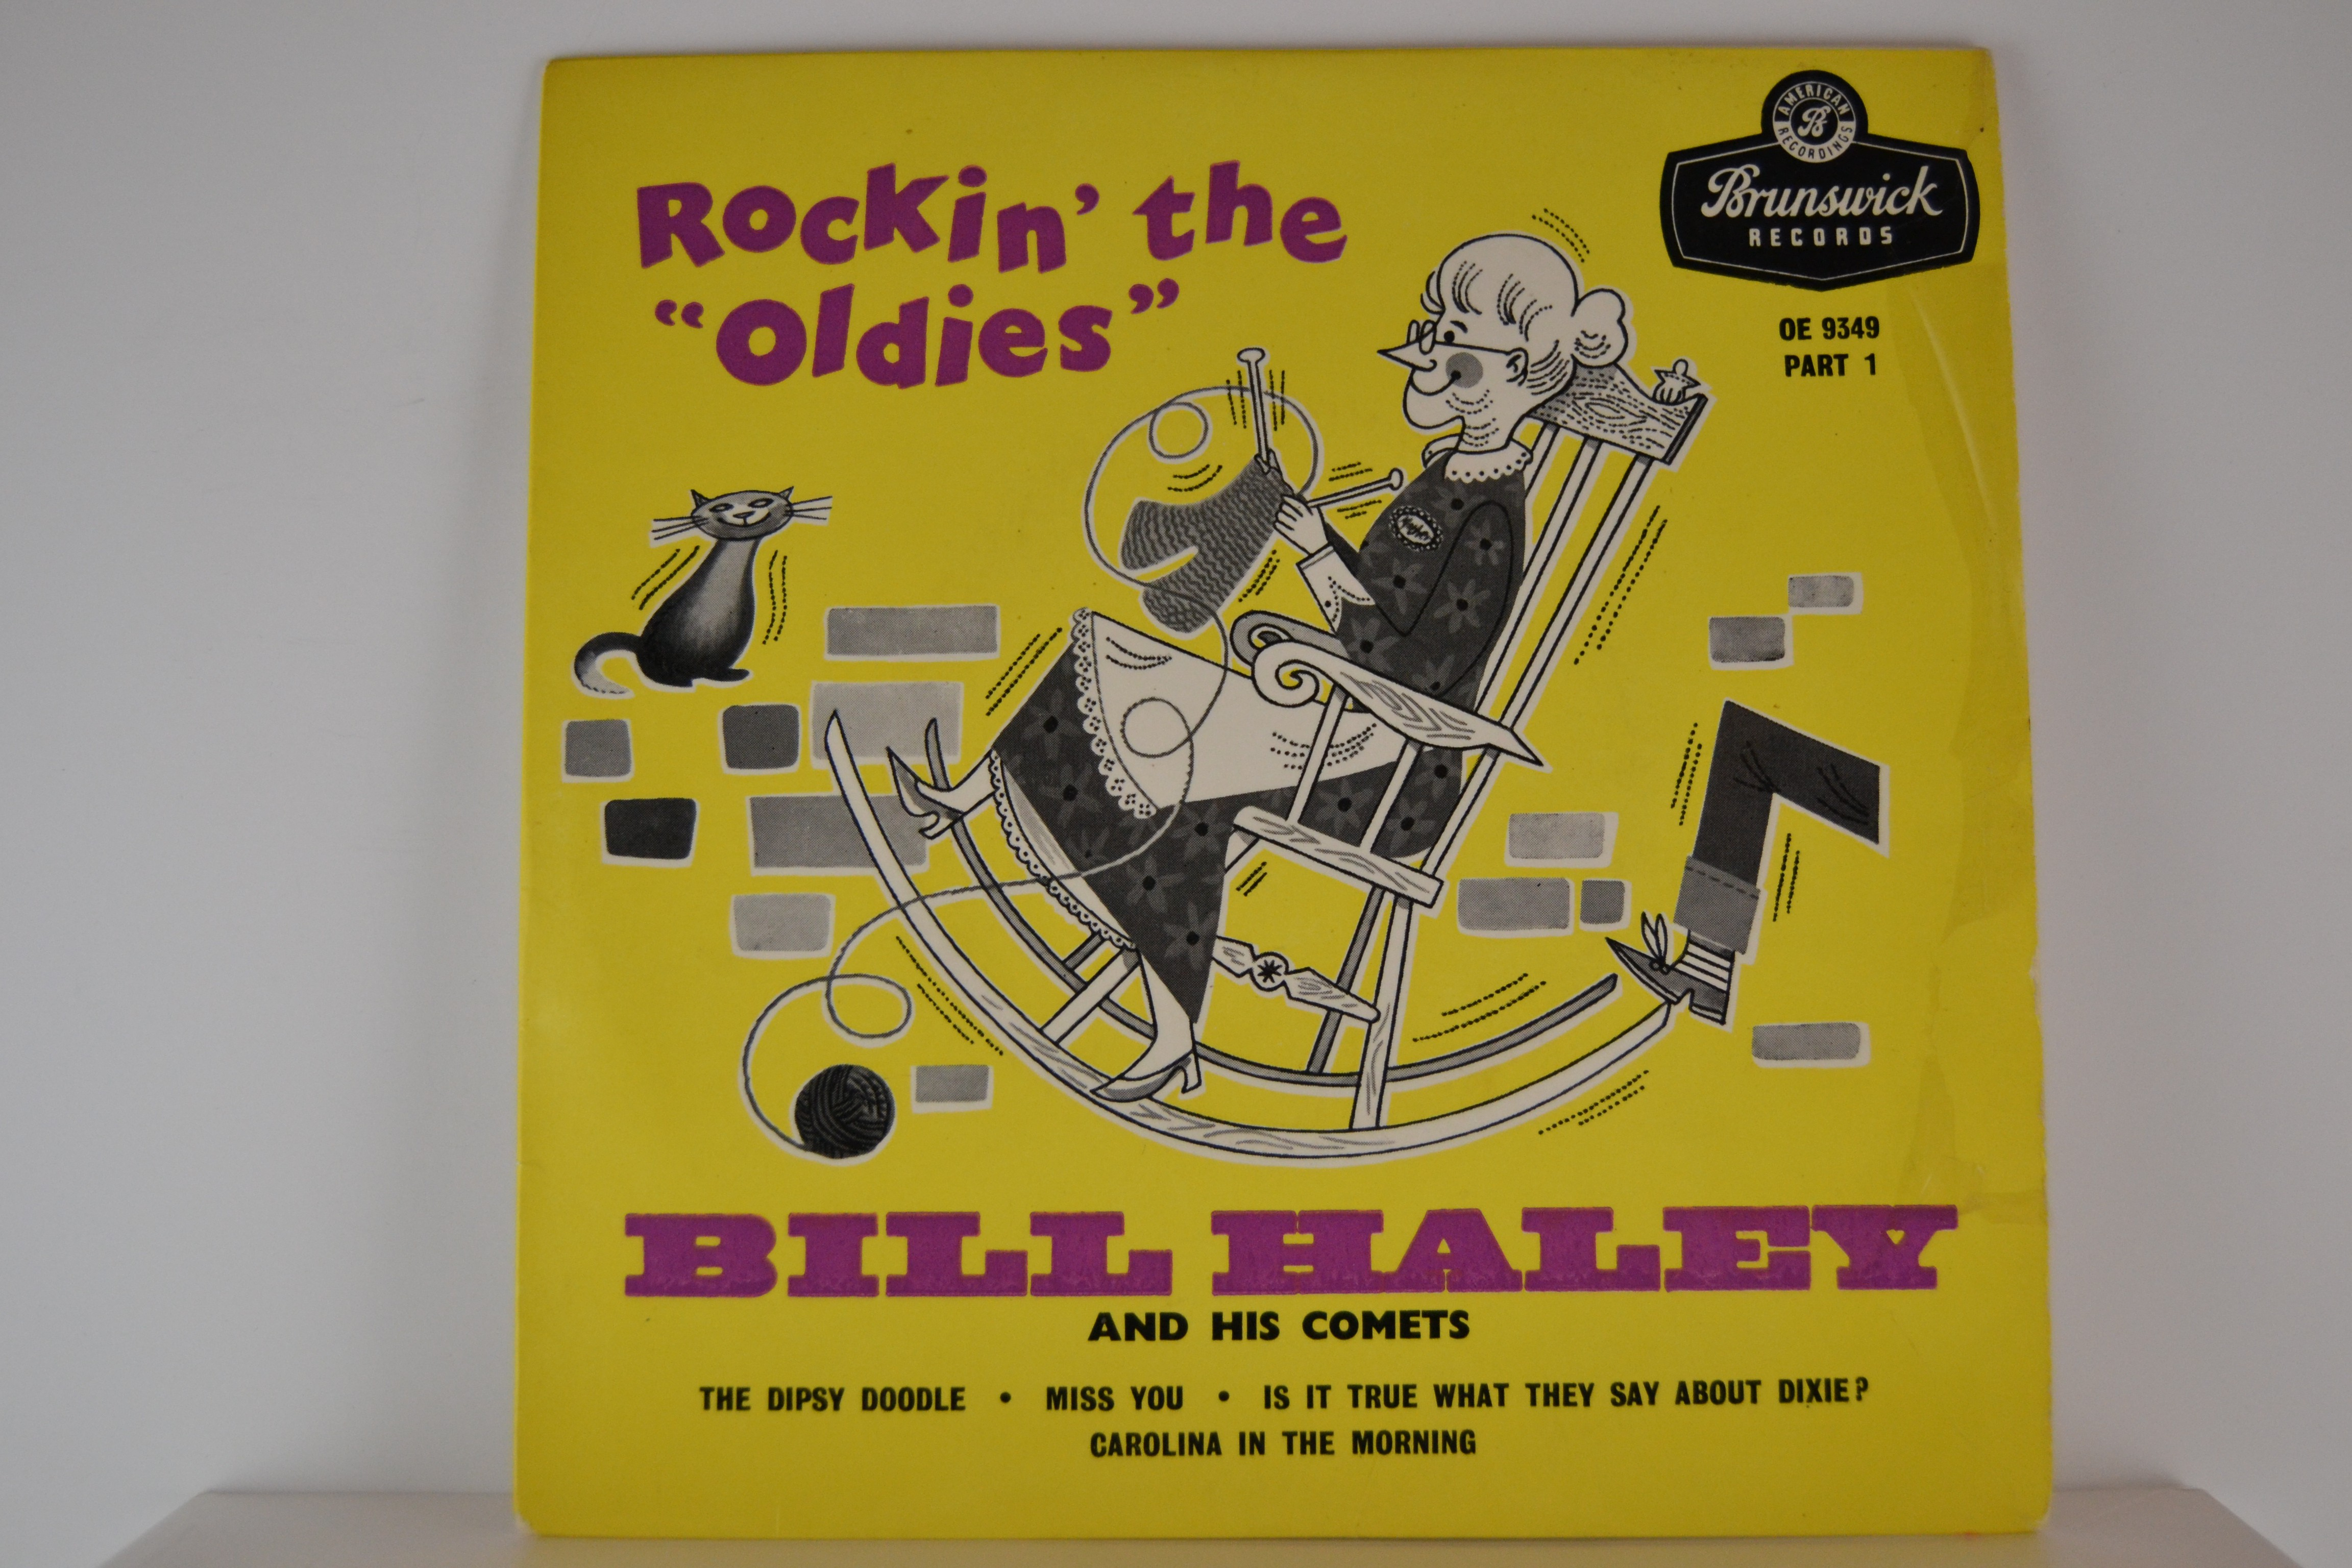 BILL HALEY & COMETS : (EP) The dipsy doodle / Miss you / Is it true what they say about dixie? / Carolina in the morning